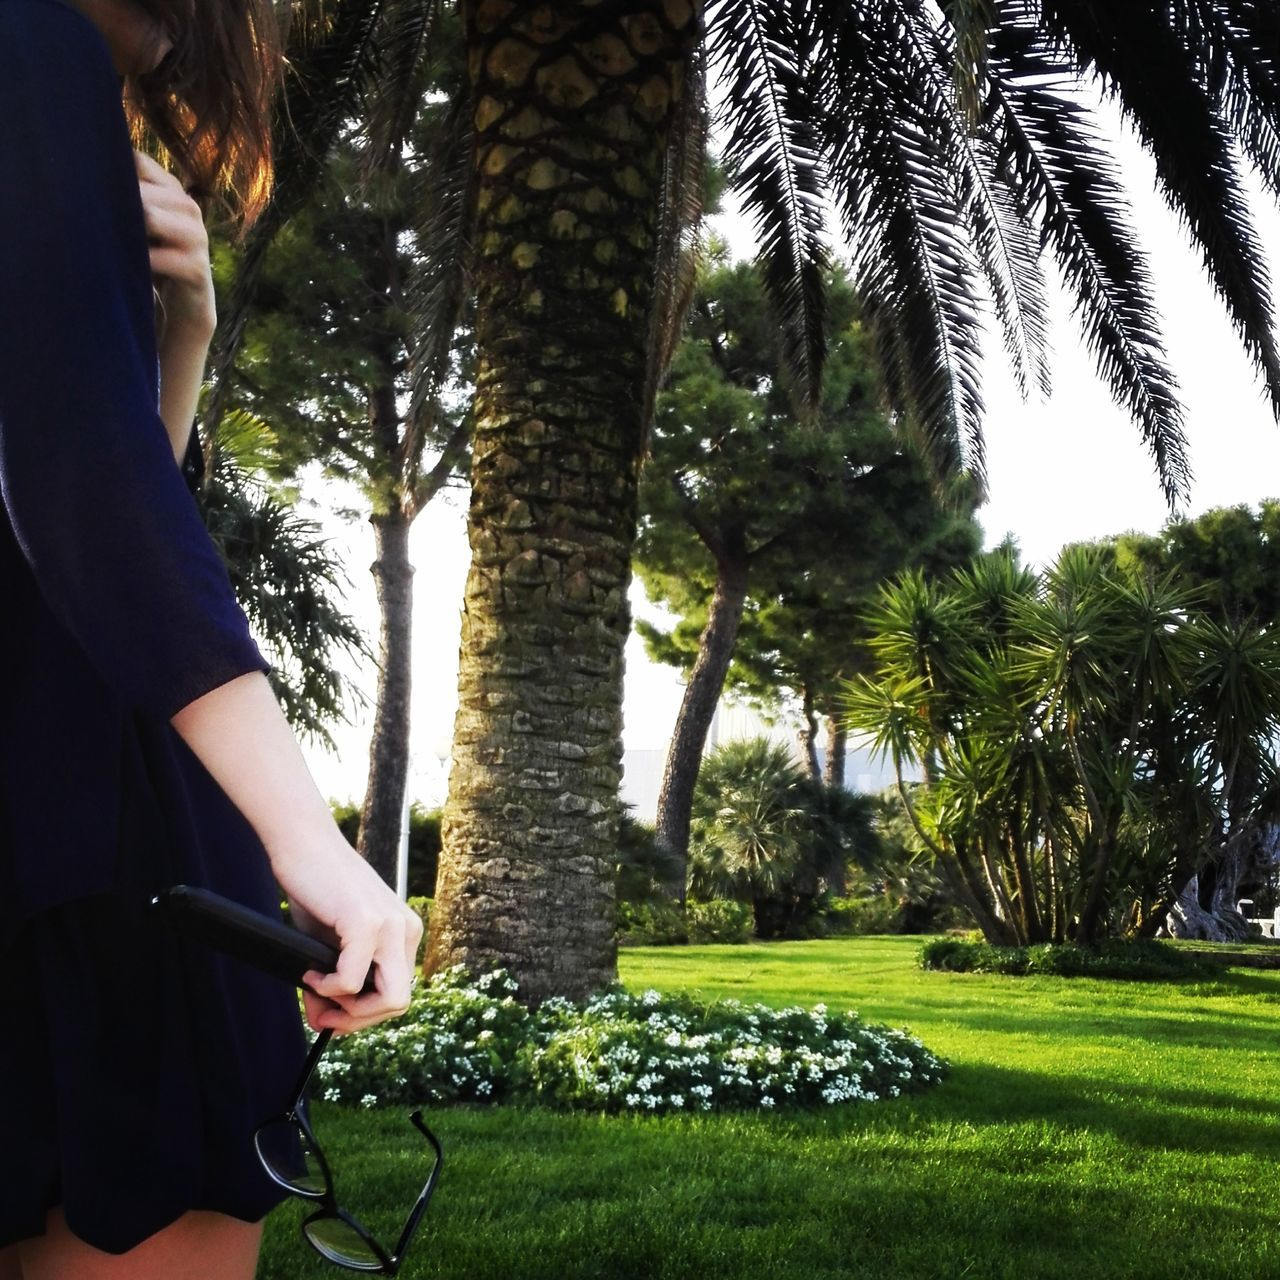 tree, one person, real people, tree trunk, lifestyles, day, leisure activity, growth, green color, nature, grass, women, outdoors, sitting, young women, young adult, standing, wireless technology, branch, beauty in nature, adult, people